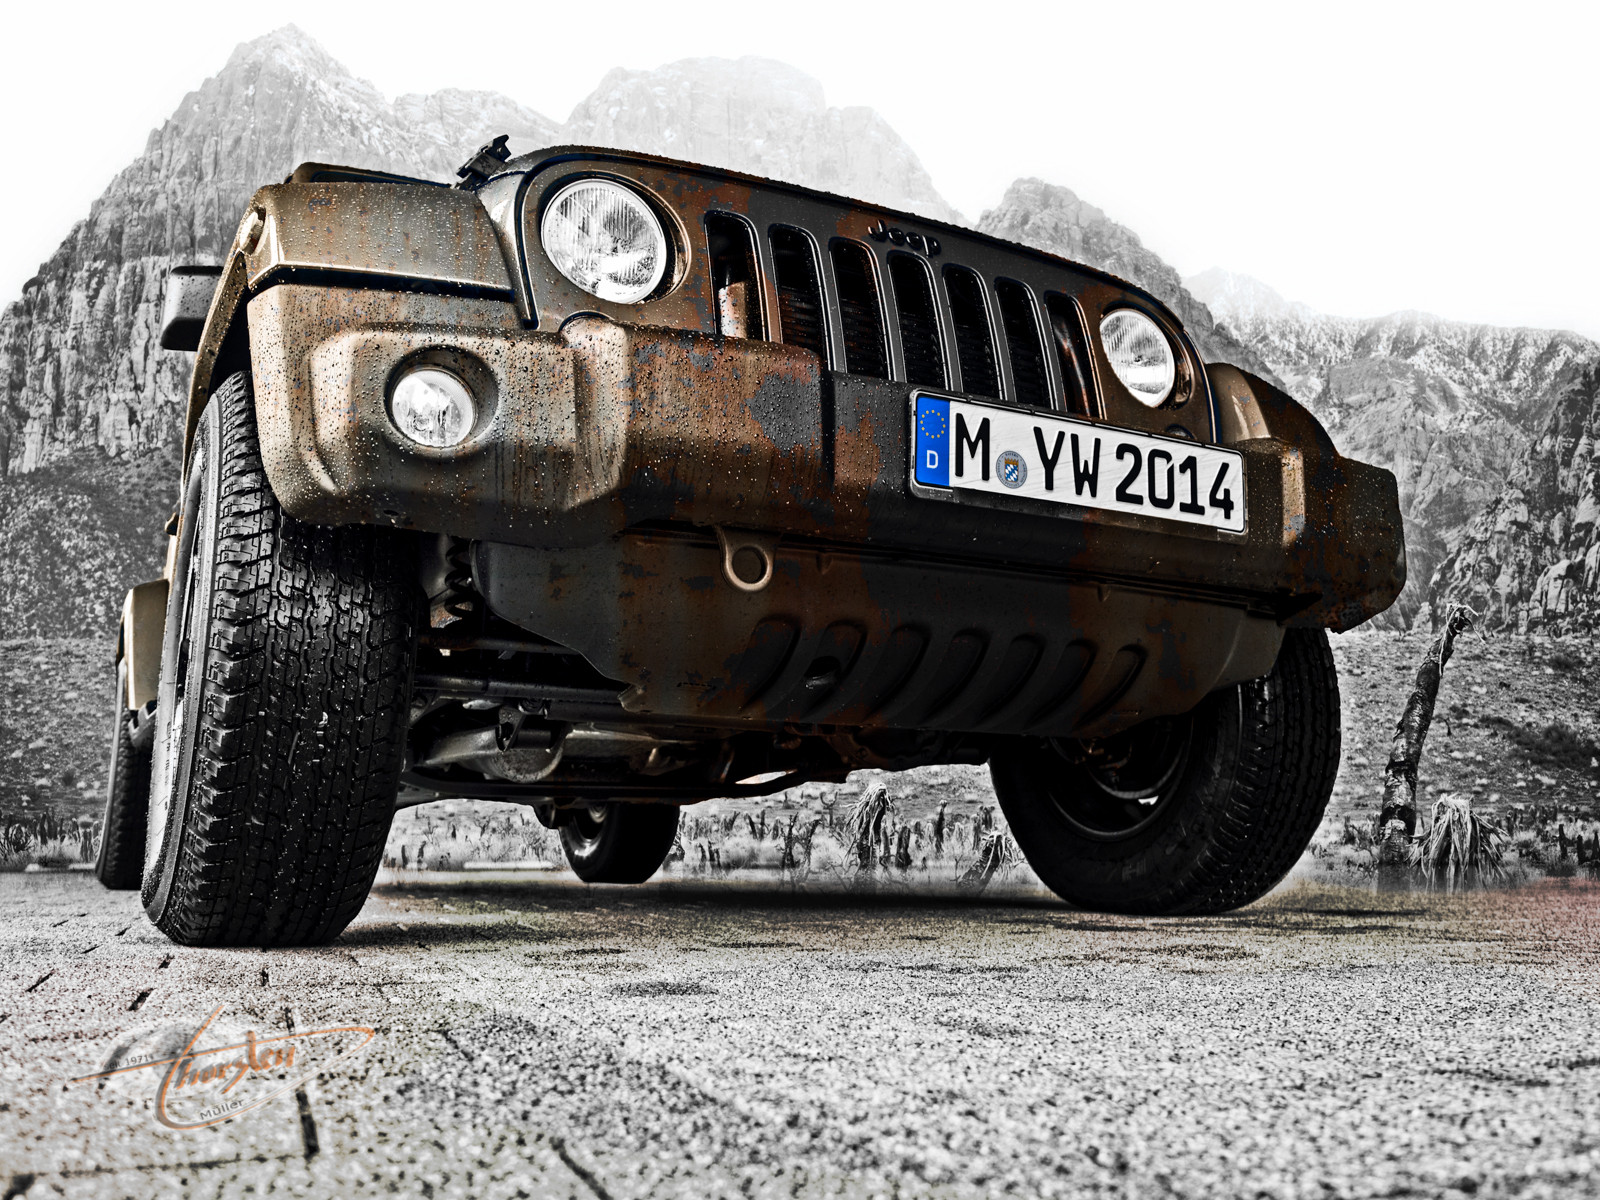 Jeep Wrangler Unlimited (Polar Edition) rusti by humanphoto